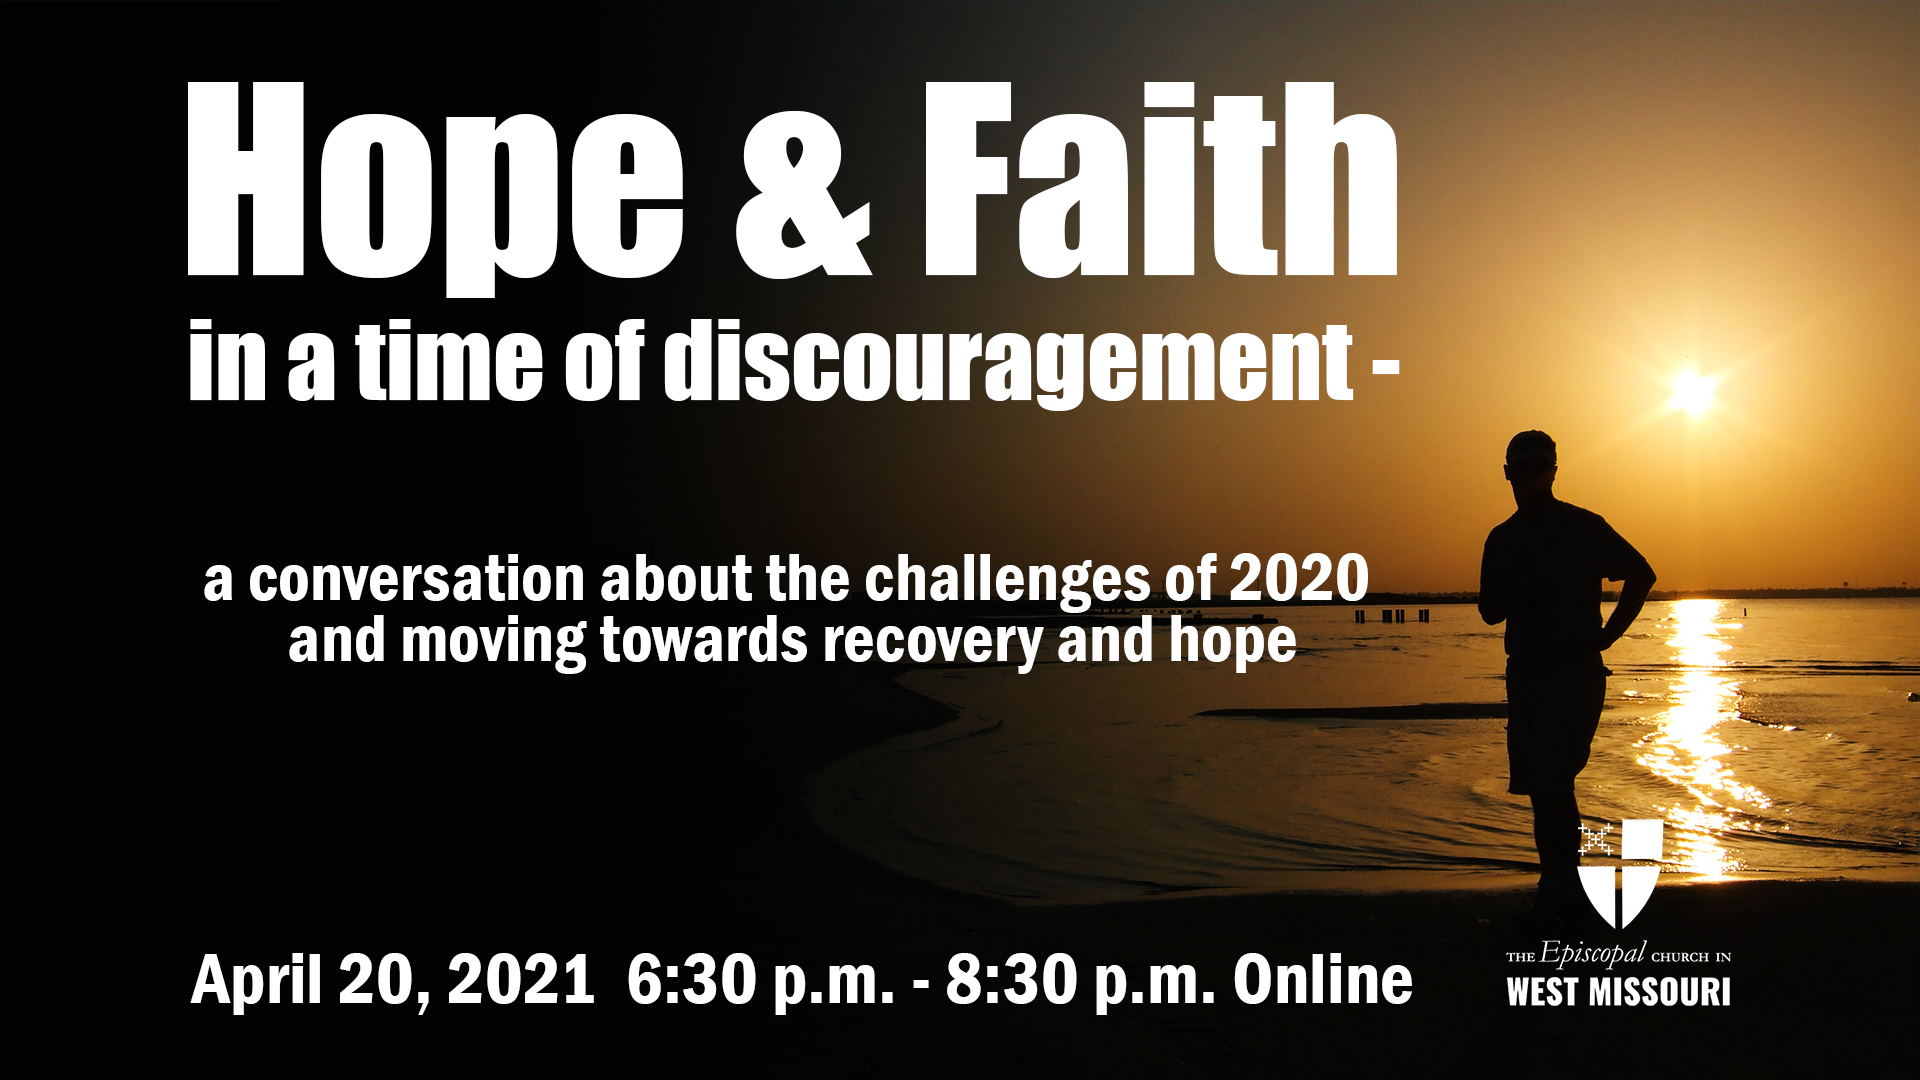 Hope & Faith in a time of Discouragement